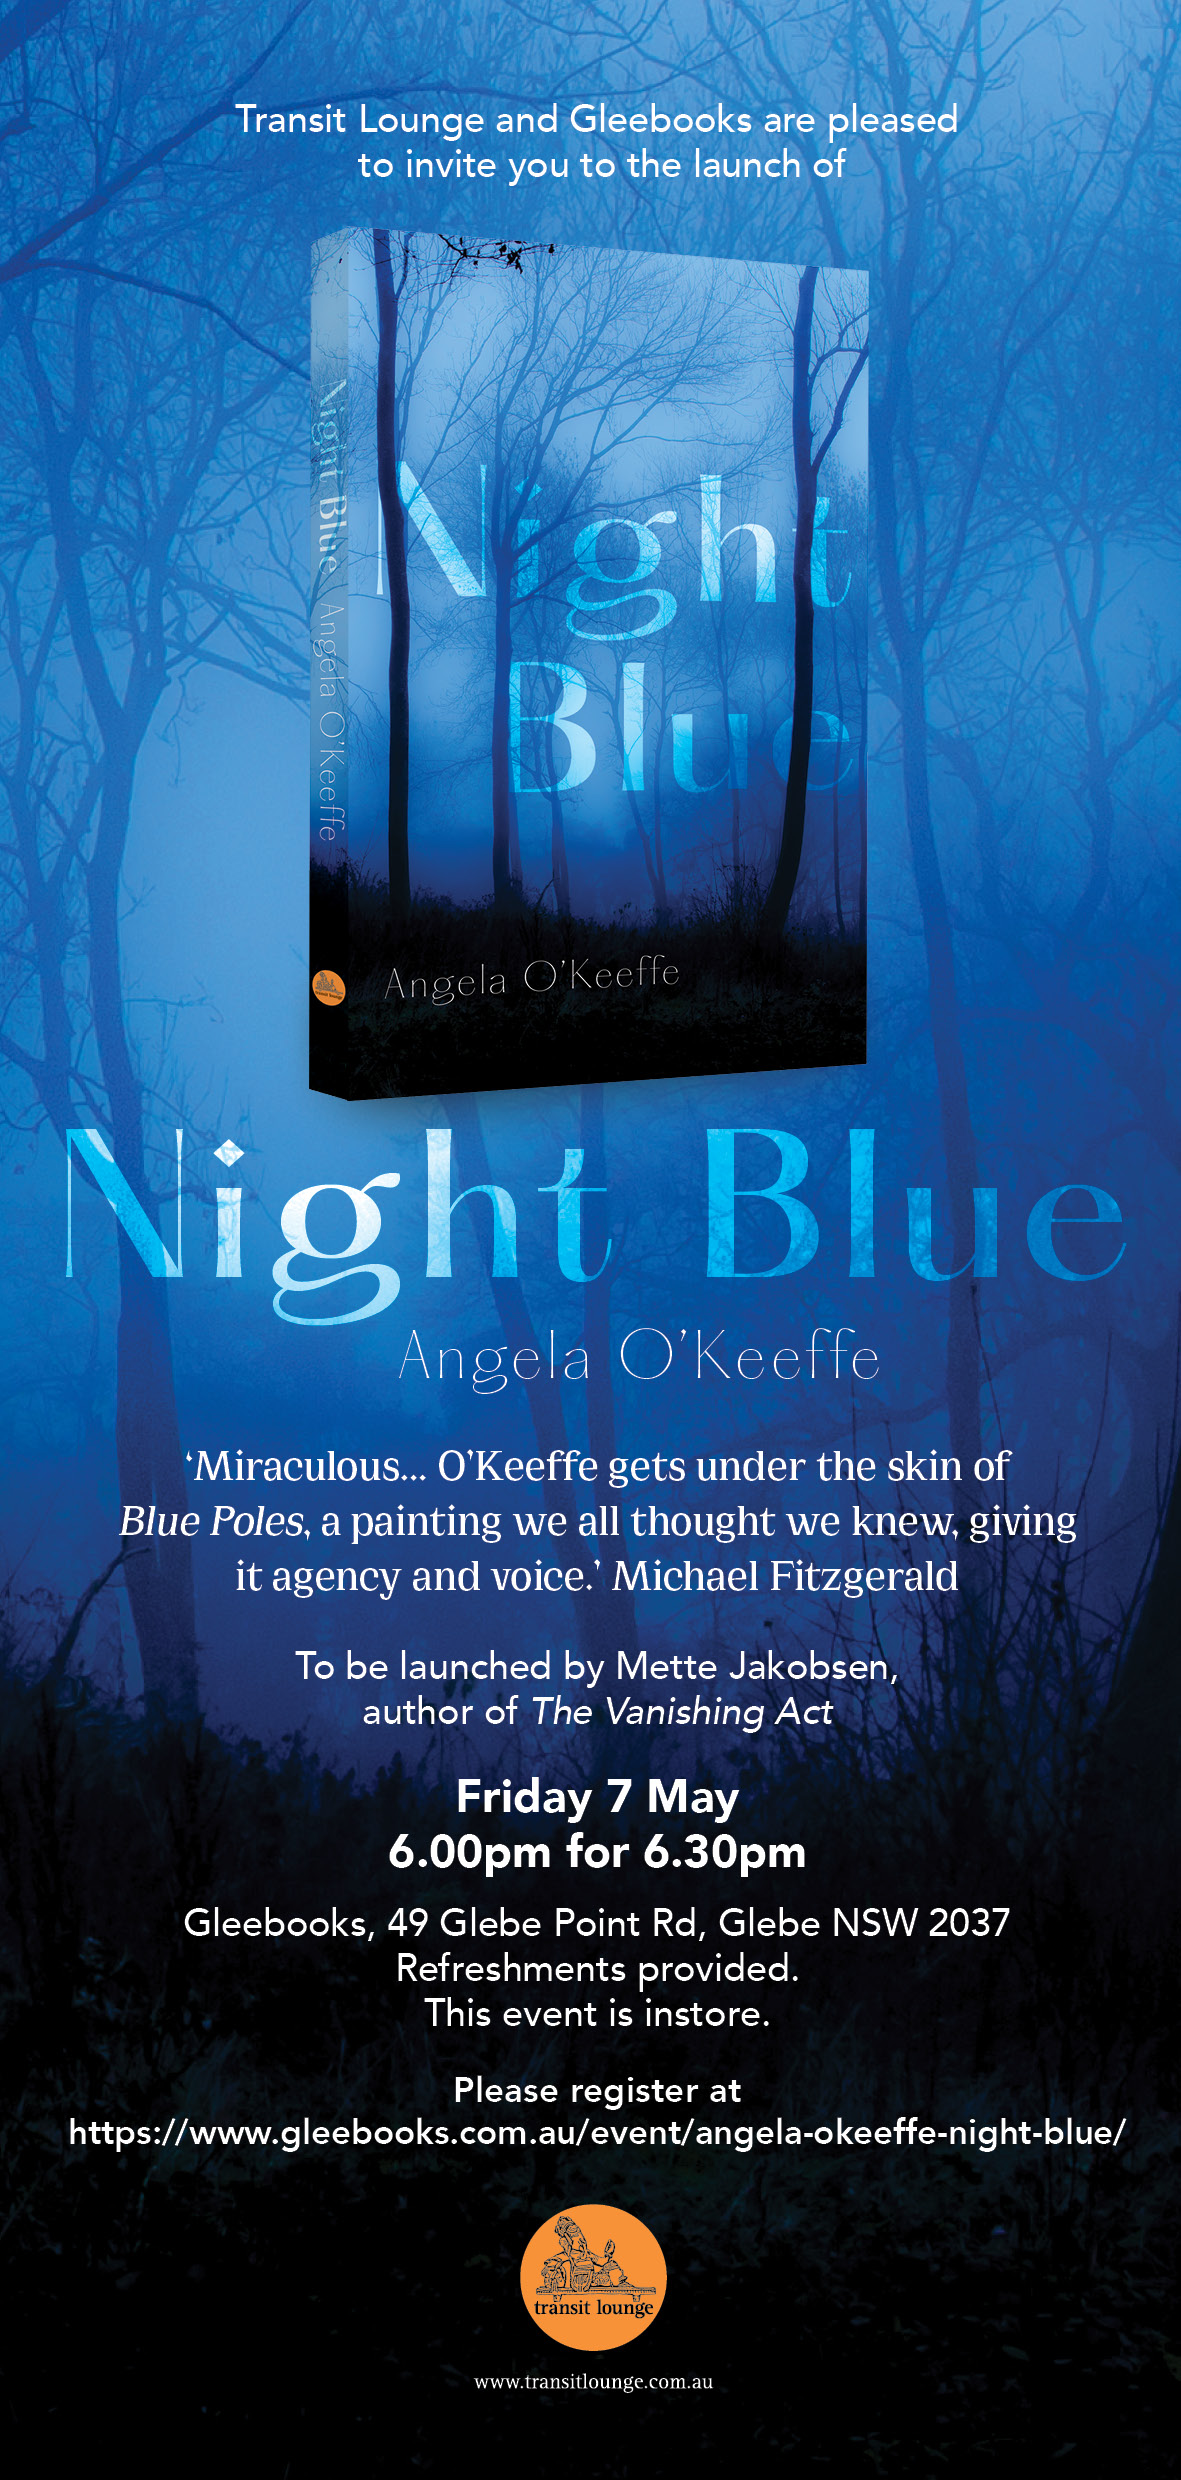 Sydney Launch of Night Blue by Angela O'Keeffe